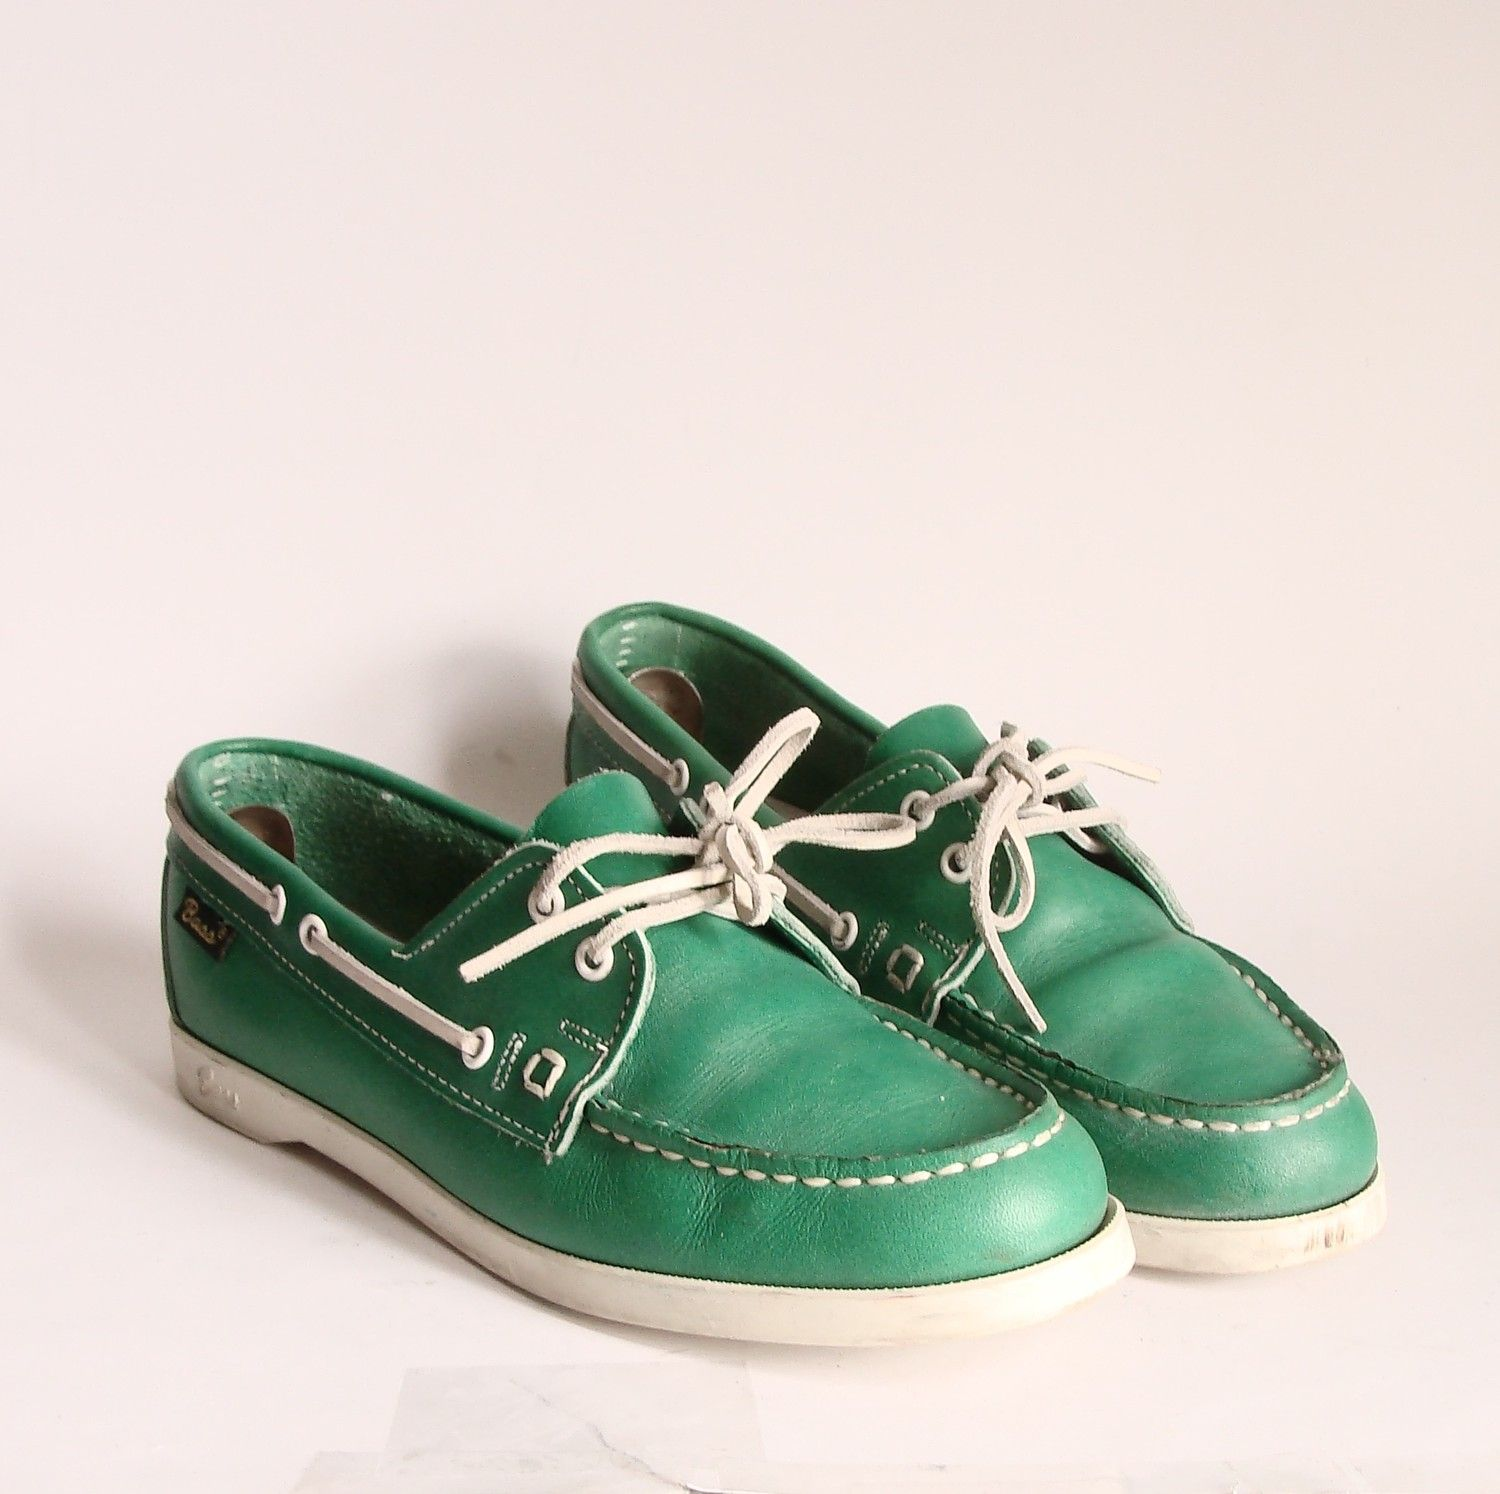 size 8.5 Vtg Kelly Green Boat Shoes. 80s bass. loafers | Boats ...